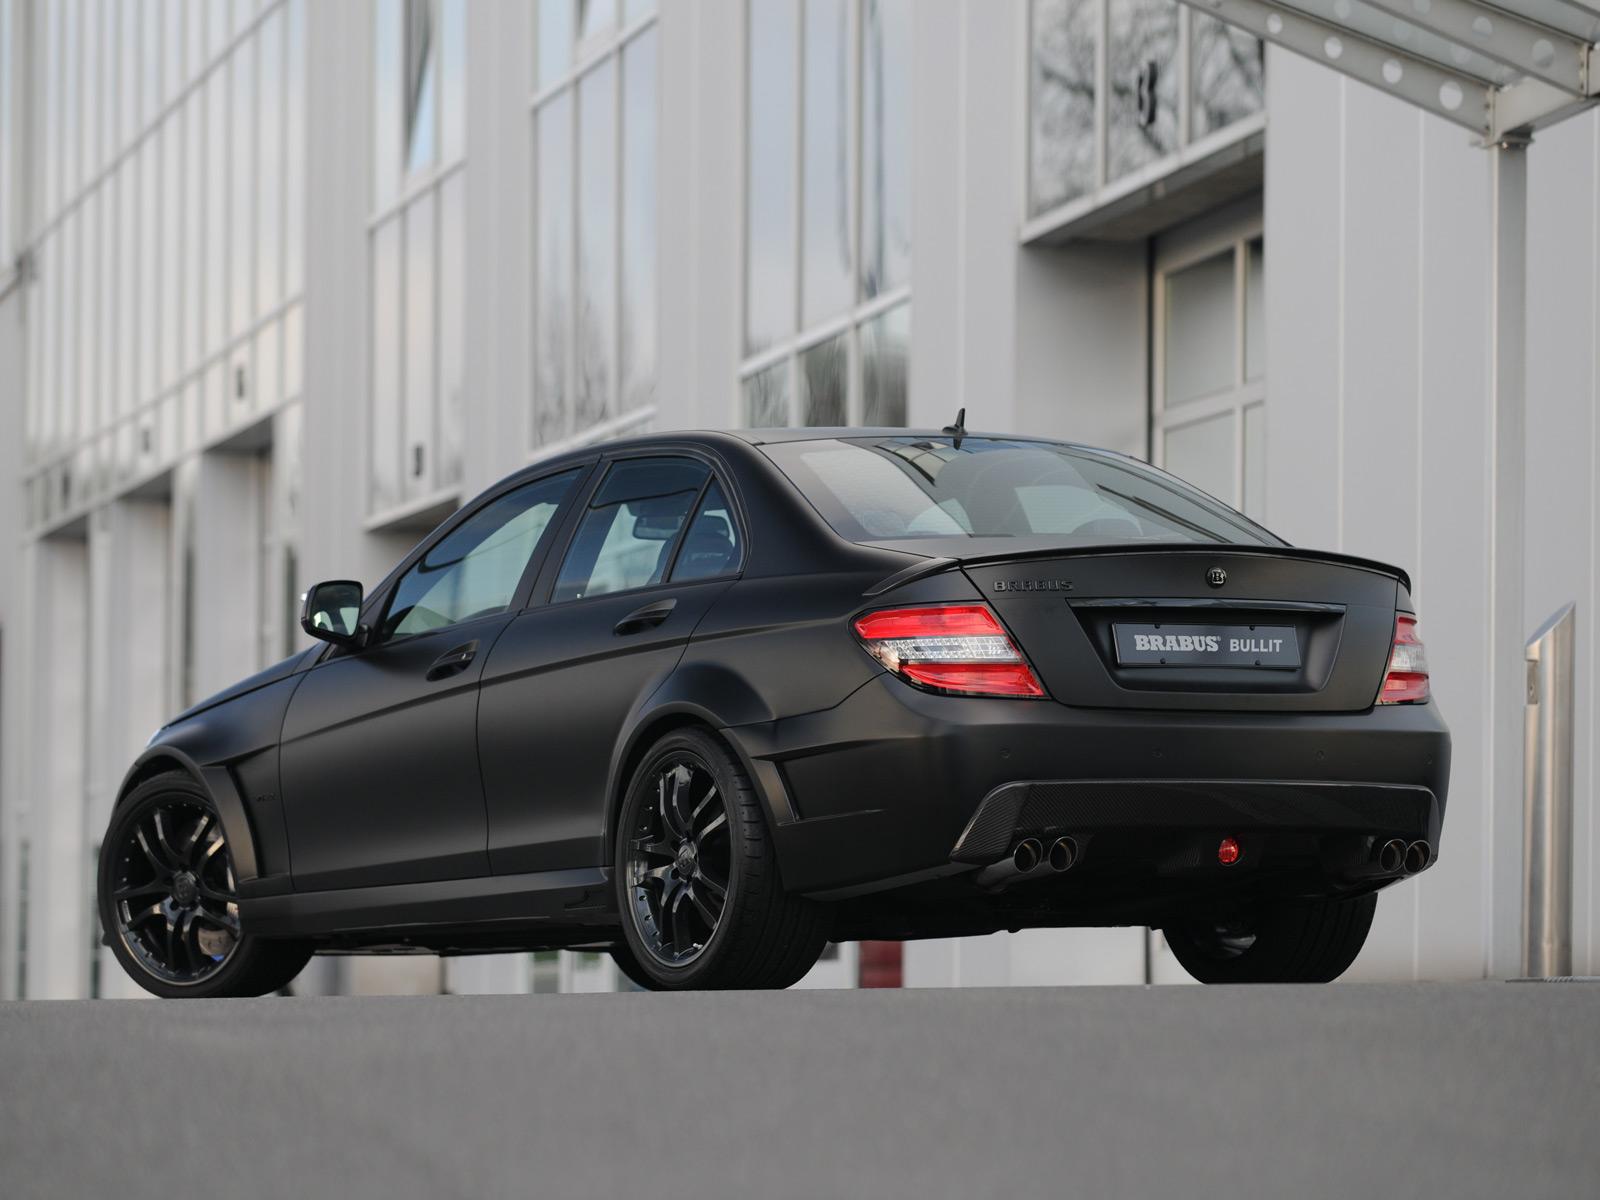 Brabus bullit photo - 4